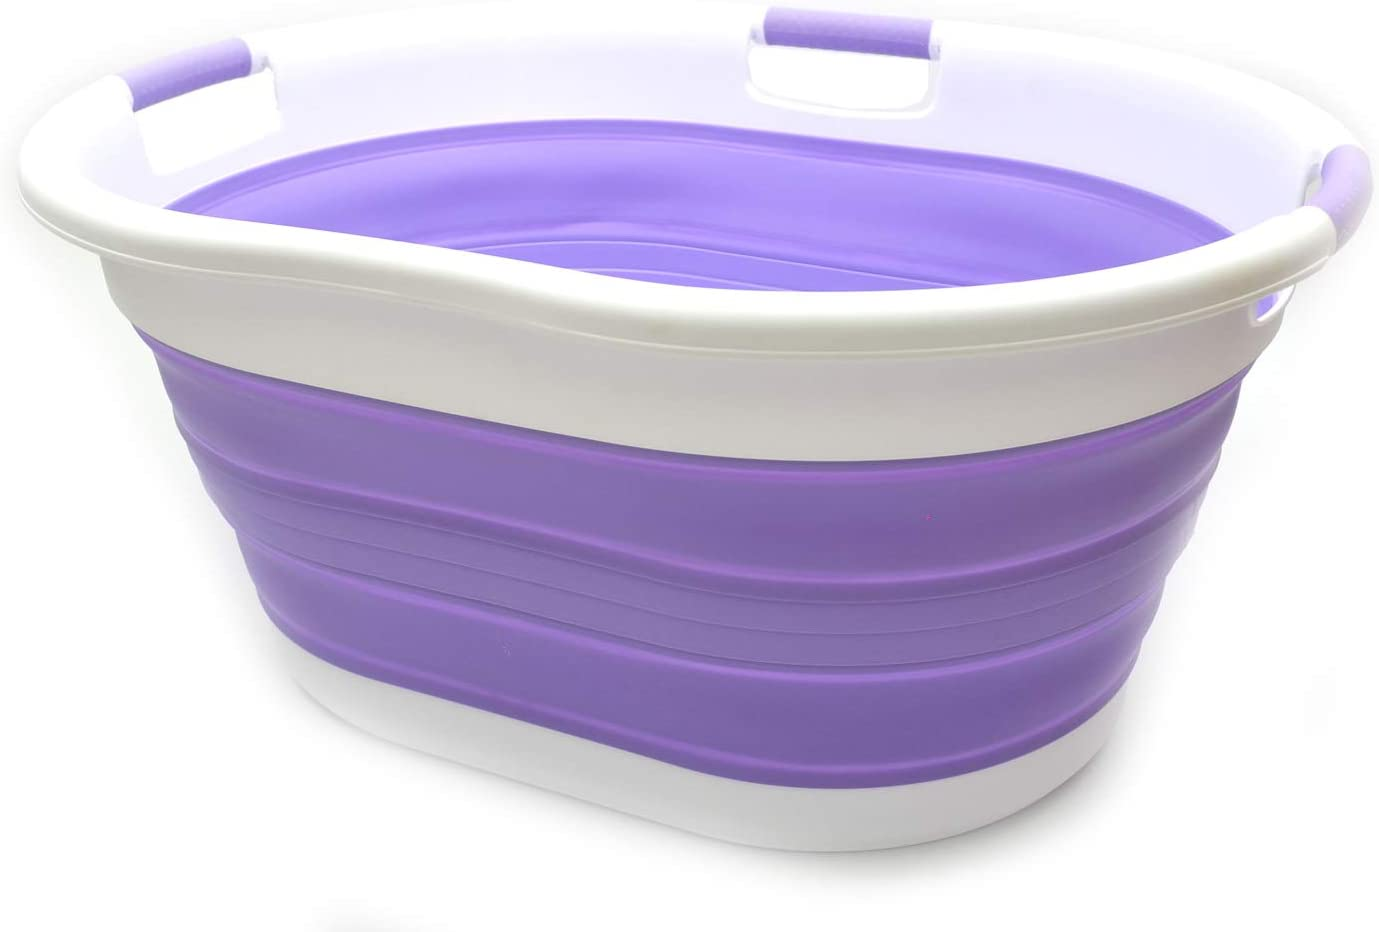 SAMMART 57L (15 Gallons) Collapsible 3-Handled Plastic Laundry Basket - Oval Tub - Portable Washing Tub-Space Saving Laundry Hamper, Water Capacity 44L / 11.6 Gallon (1 pc - Oval, Lt. Purple)